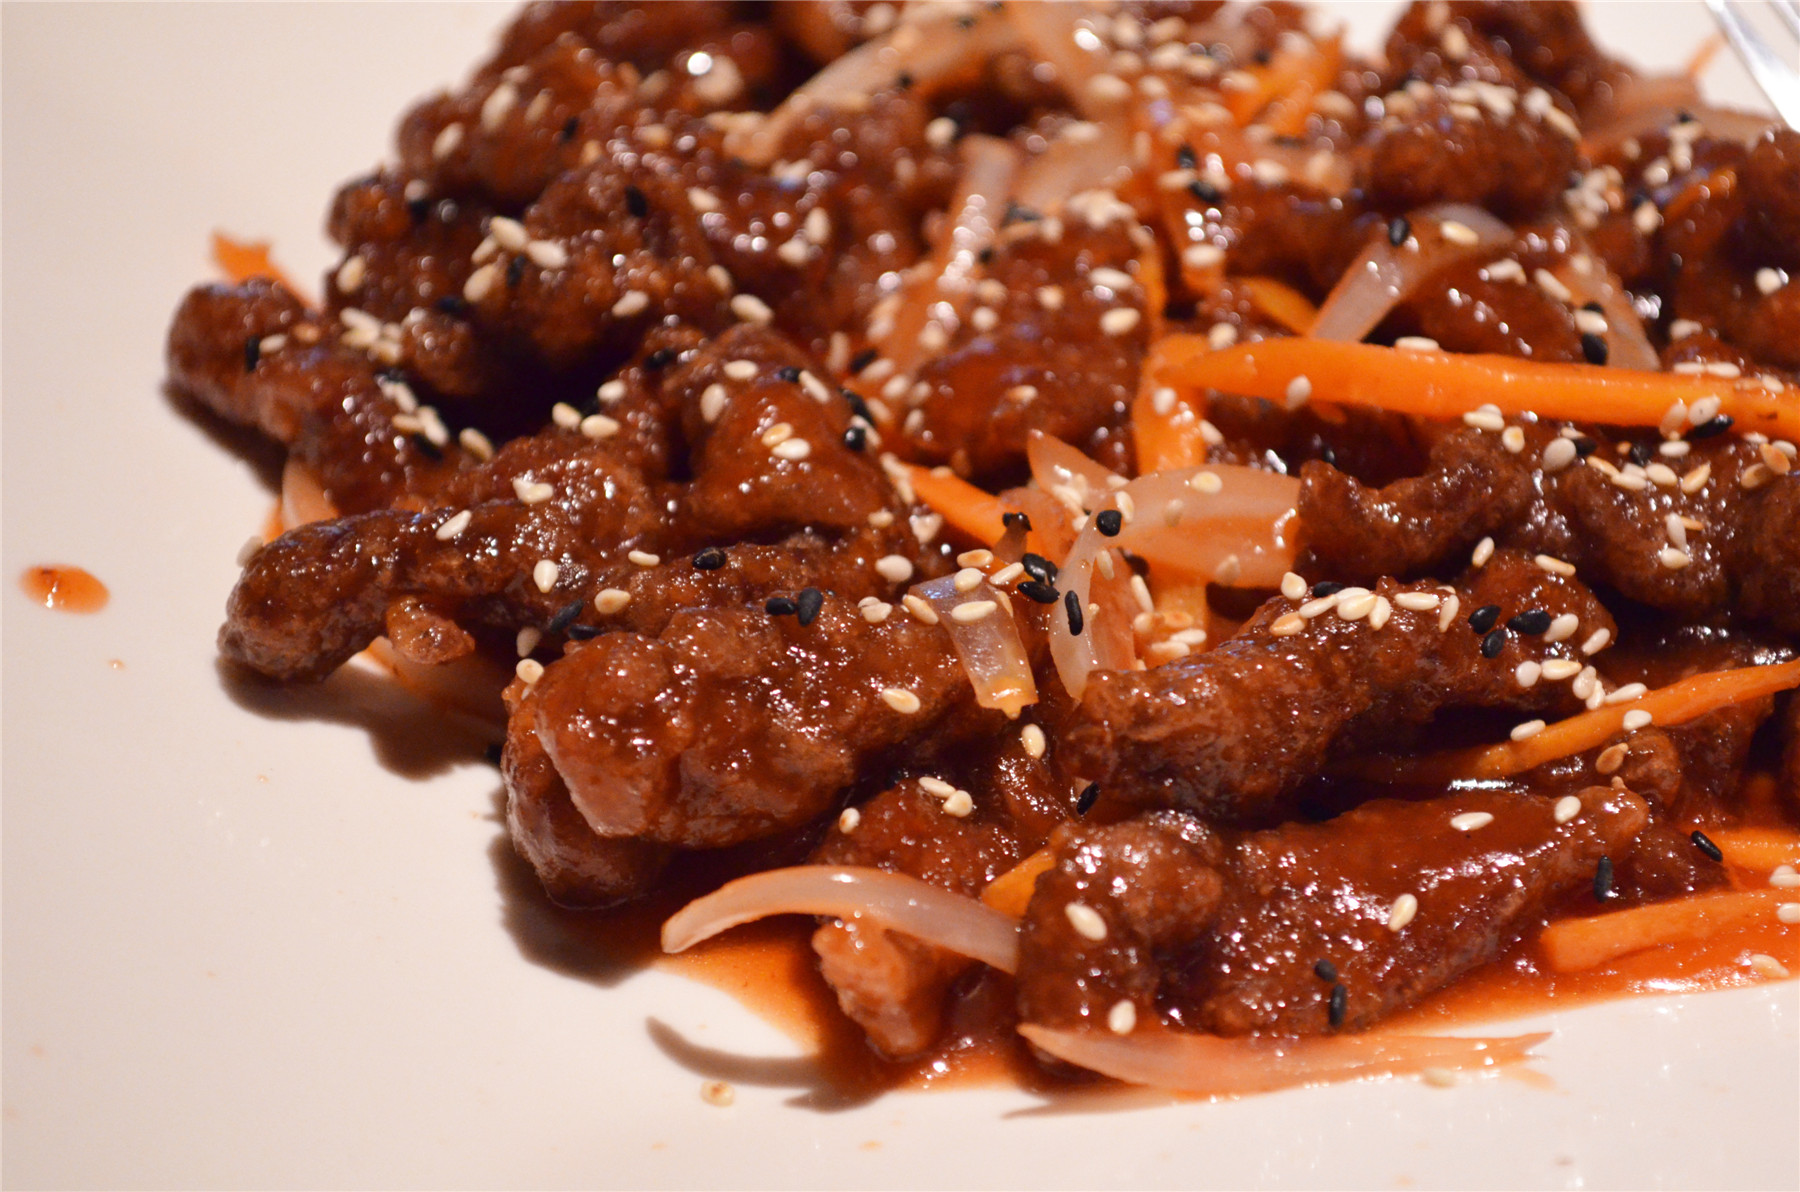 shredded steak cantonese style.jpg